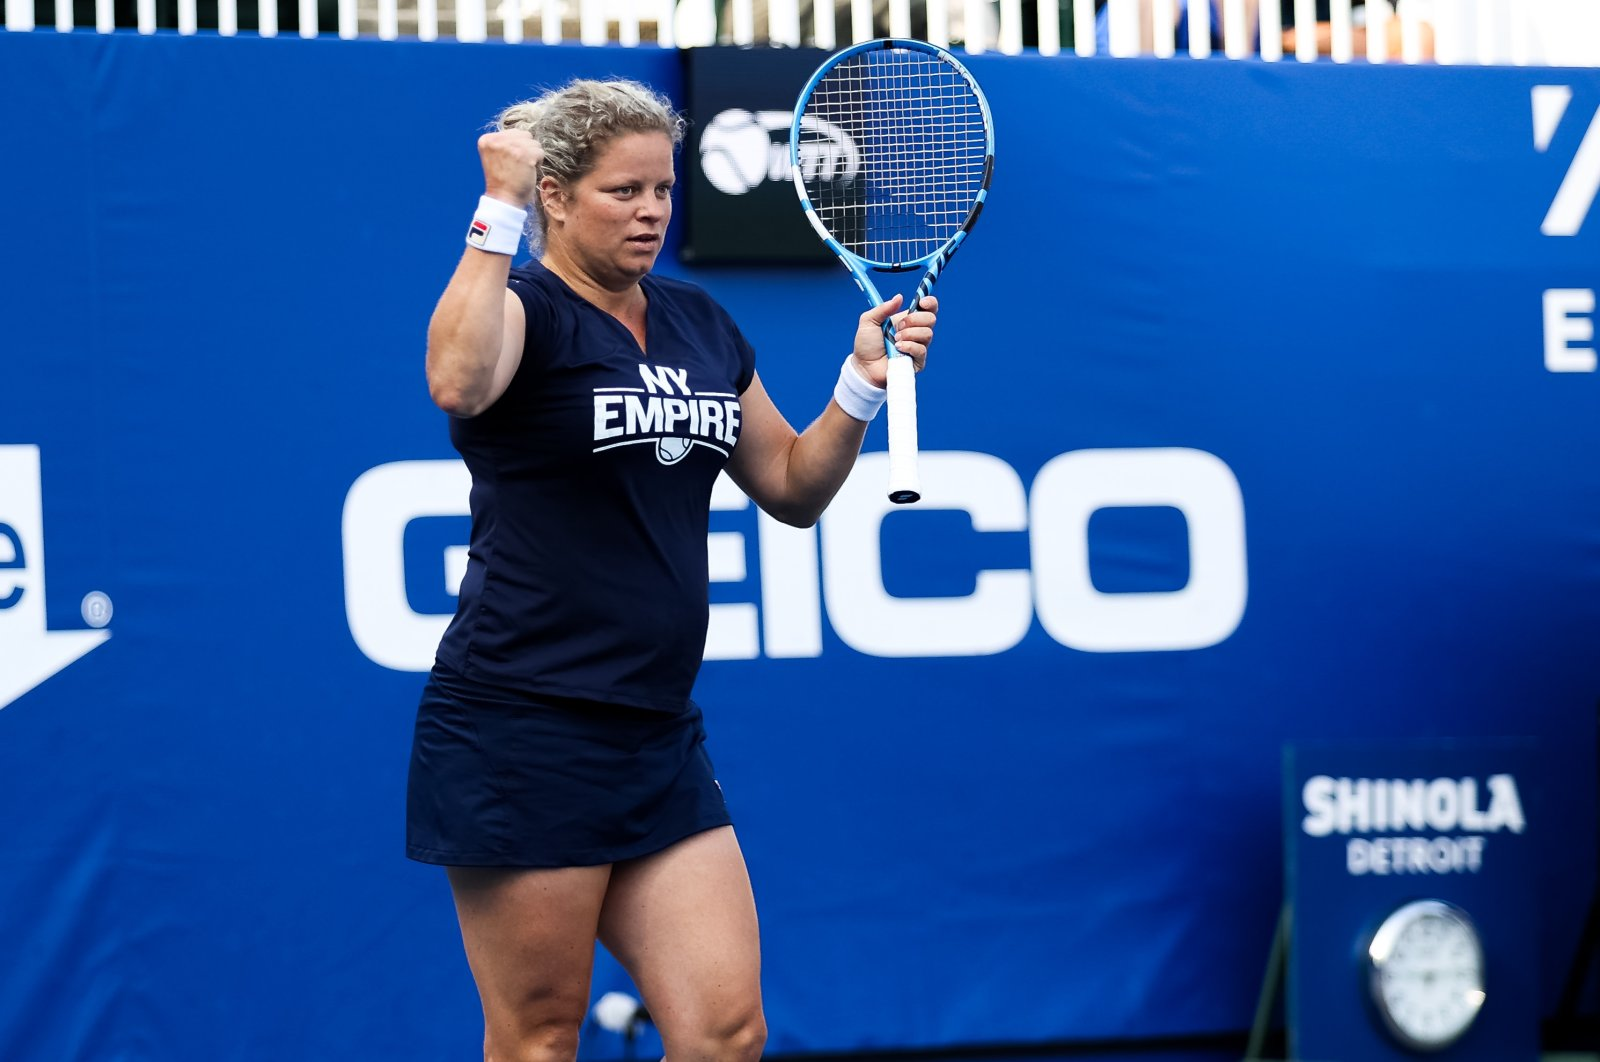 Kim Clijsters during a New York Empire match against San Diego Aviators, West Virginia, U.S., July 22, 2020. (Reuters Photo)